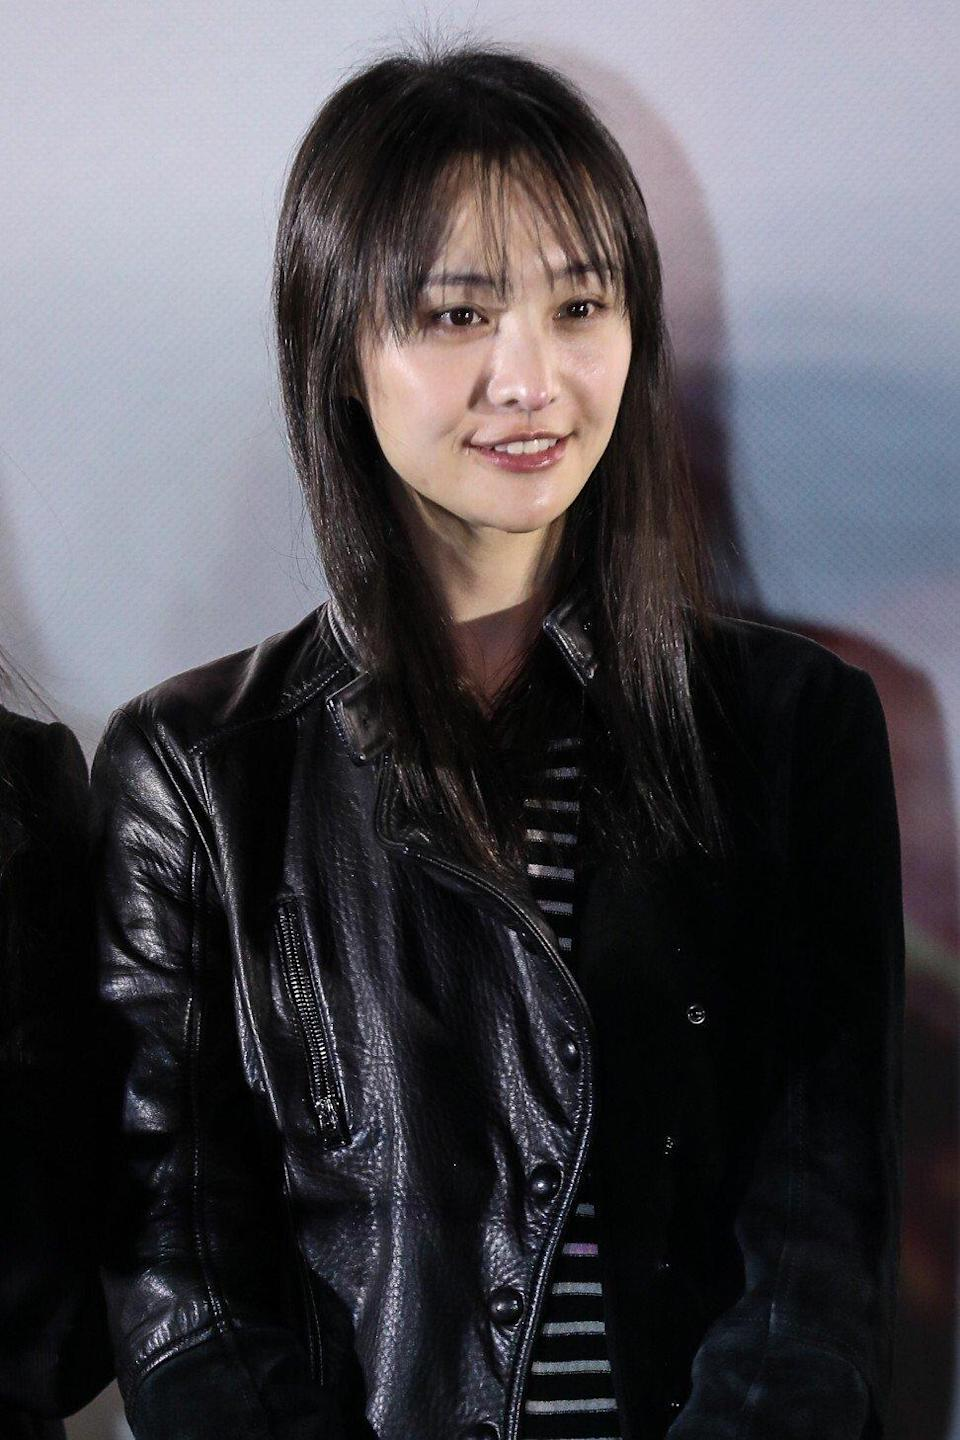 Actress Zheng Shuang was handed a massive tax evasion fine in August. Photo: Getty Images